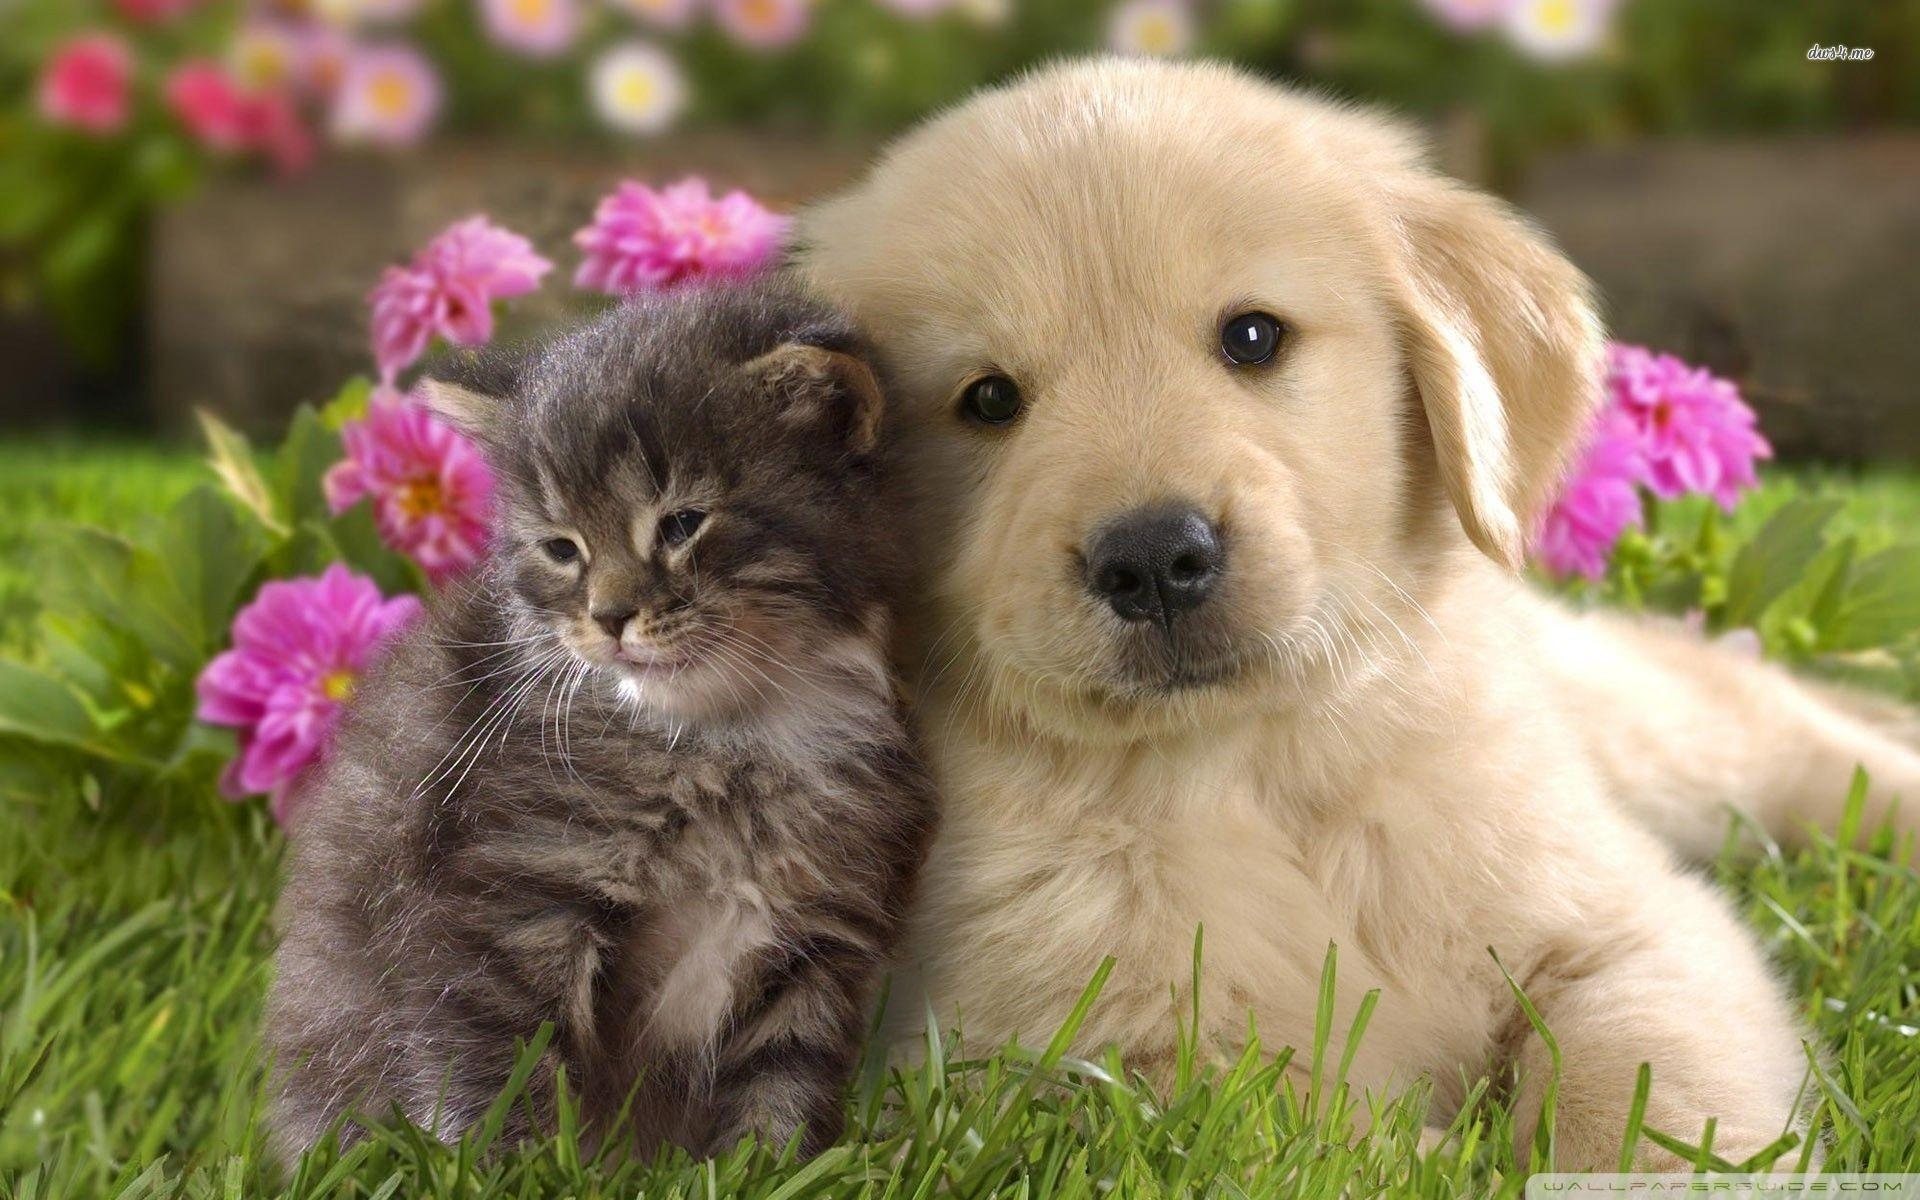 Animal Friends Wallpapers - Wallpaper Cave